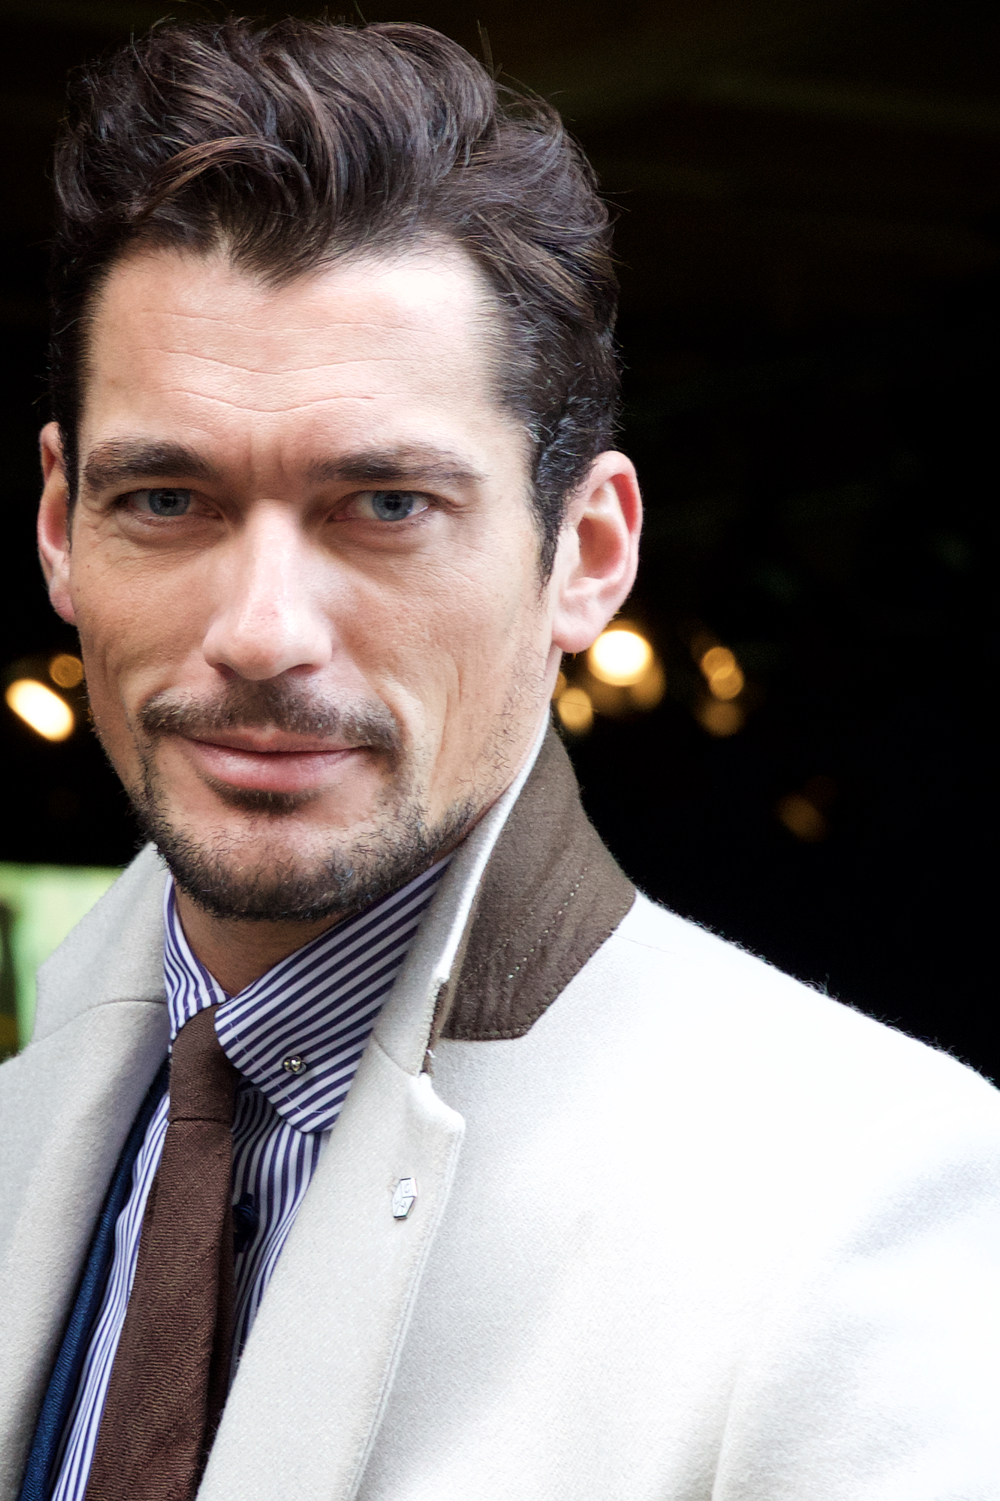 David Gandy pincollar shirts mariascard photographyI31A4483 (1).jpg